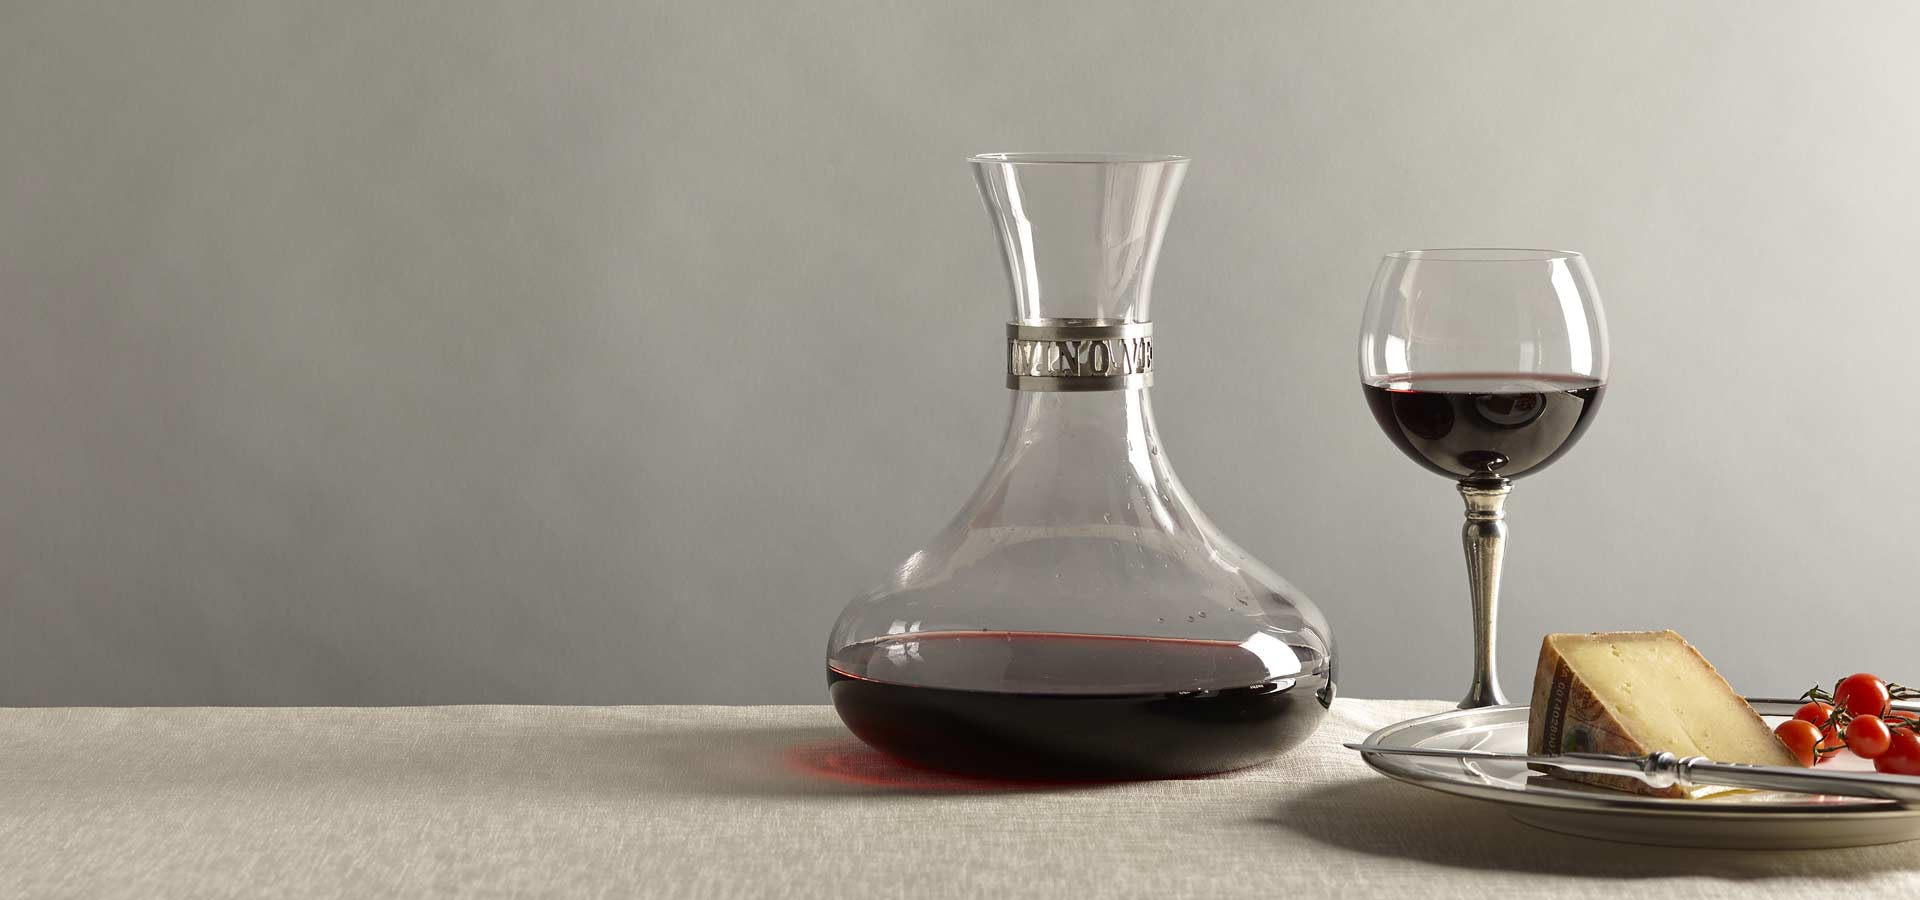 brocche, caraffe, decanter